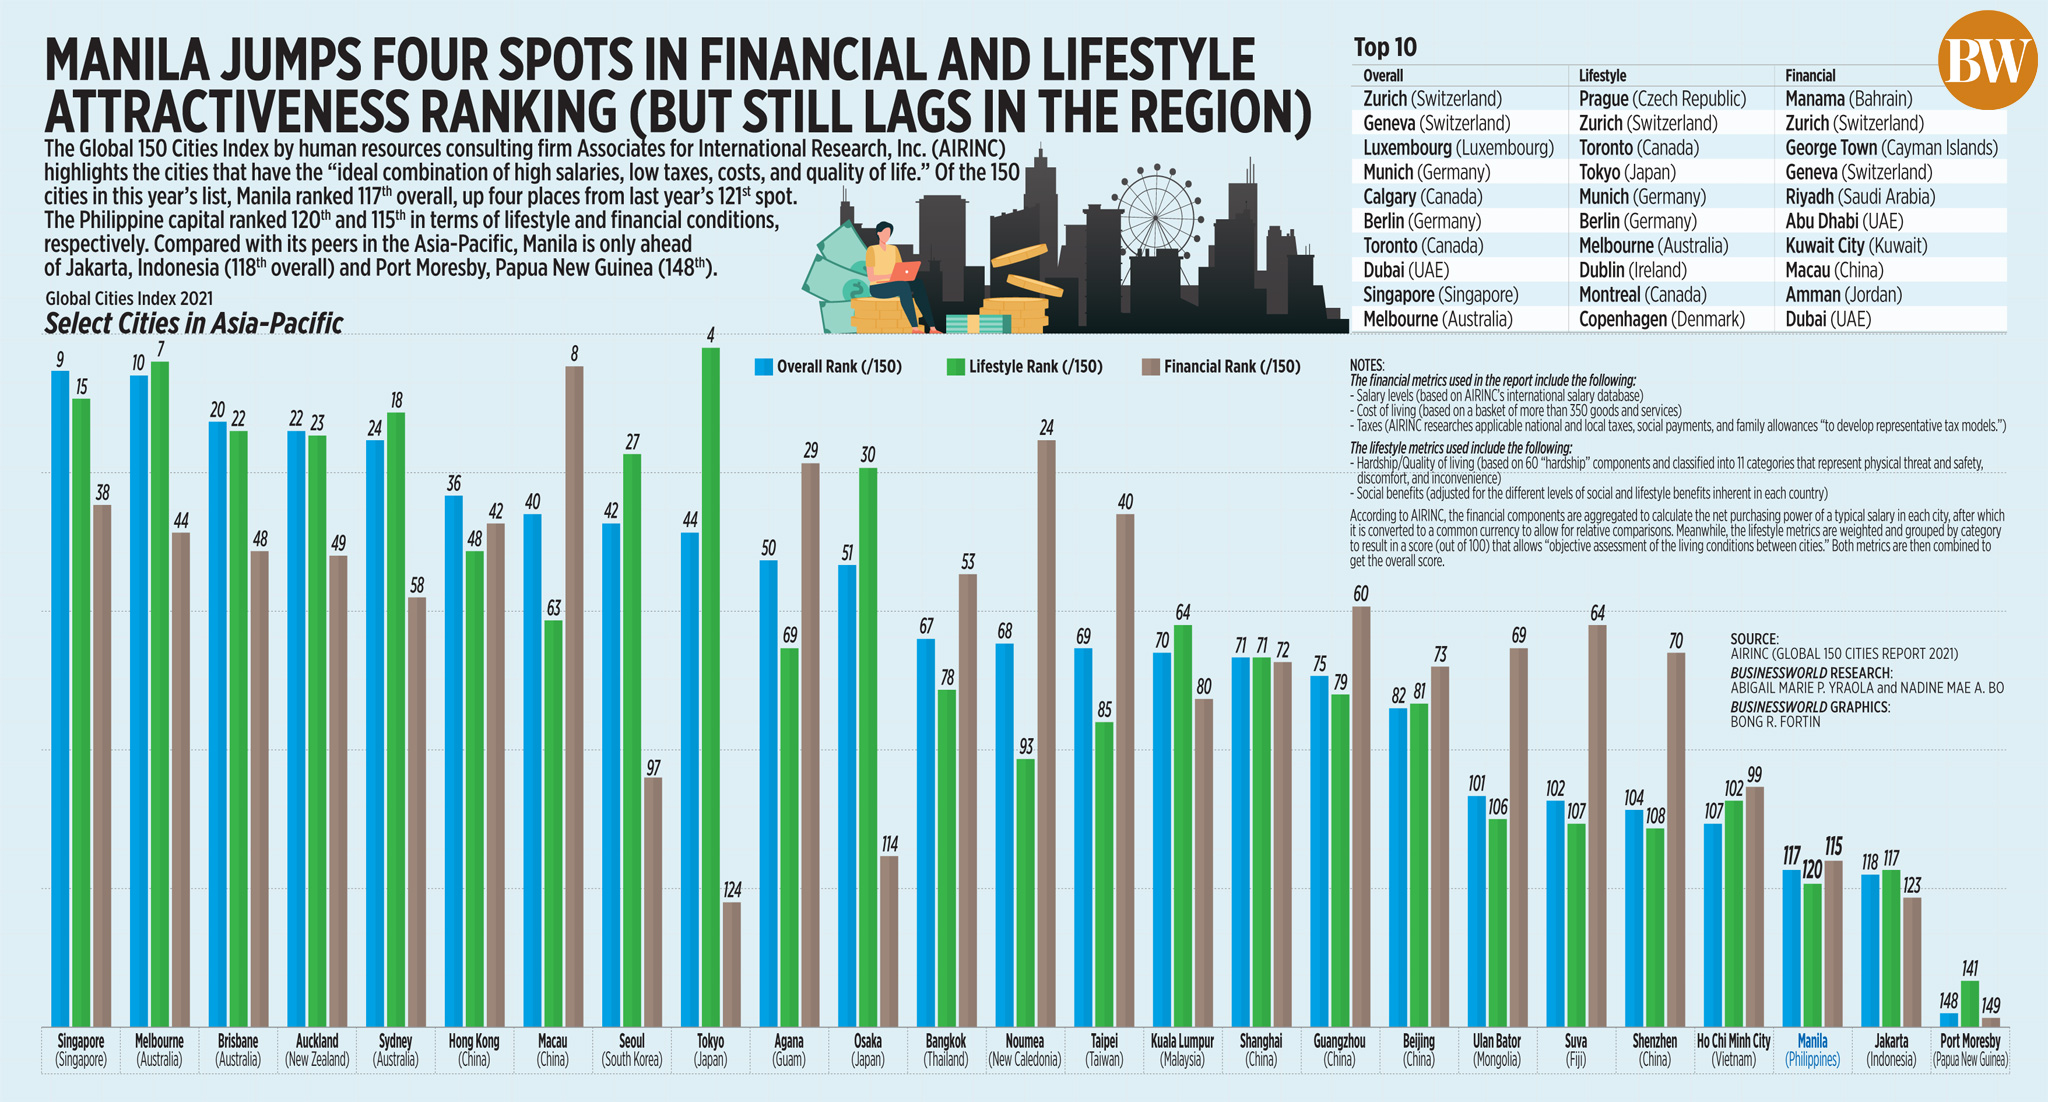 Manila jumps four spots in financial and lifestyle attractiveness ranking (but still lags in the region)